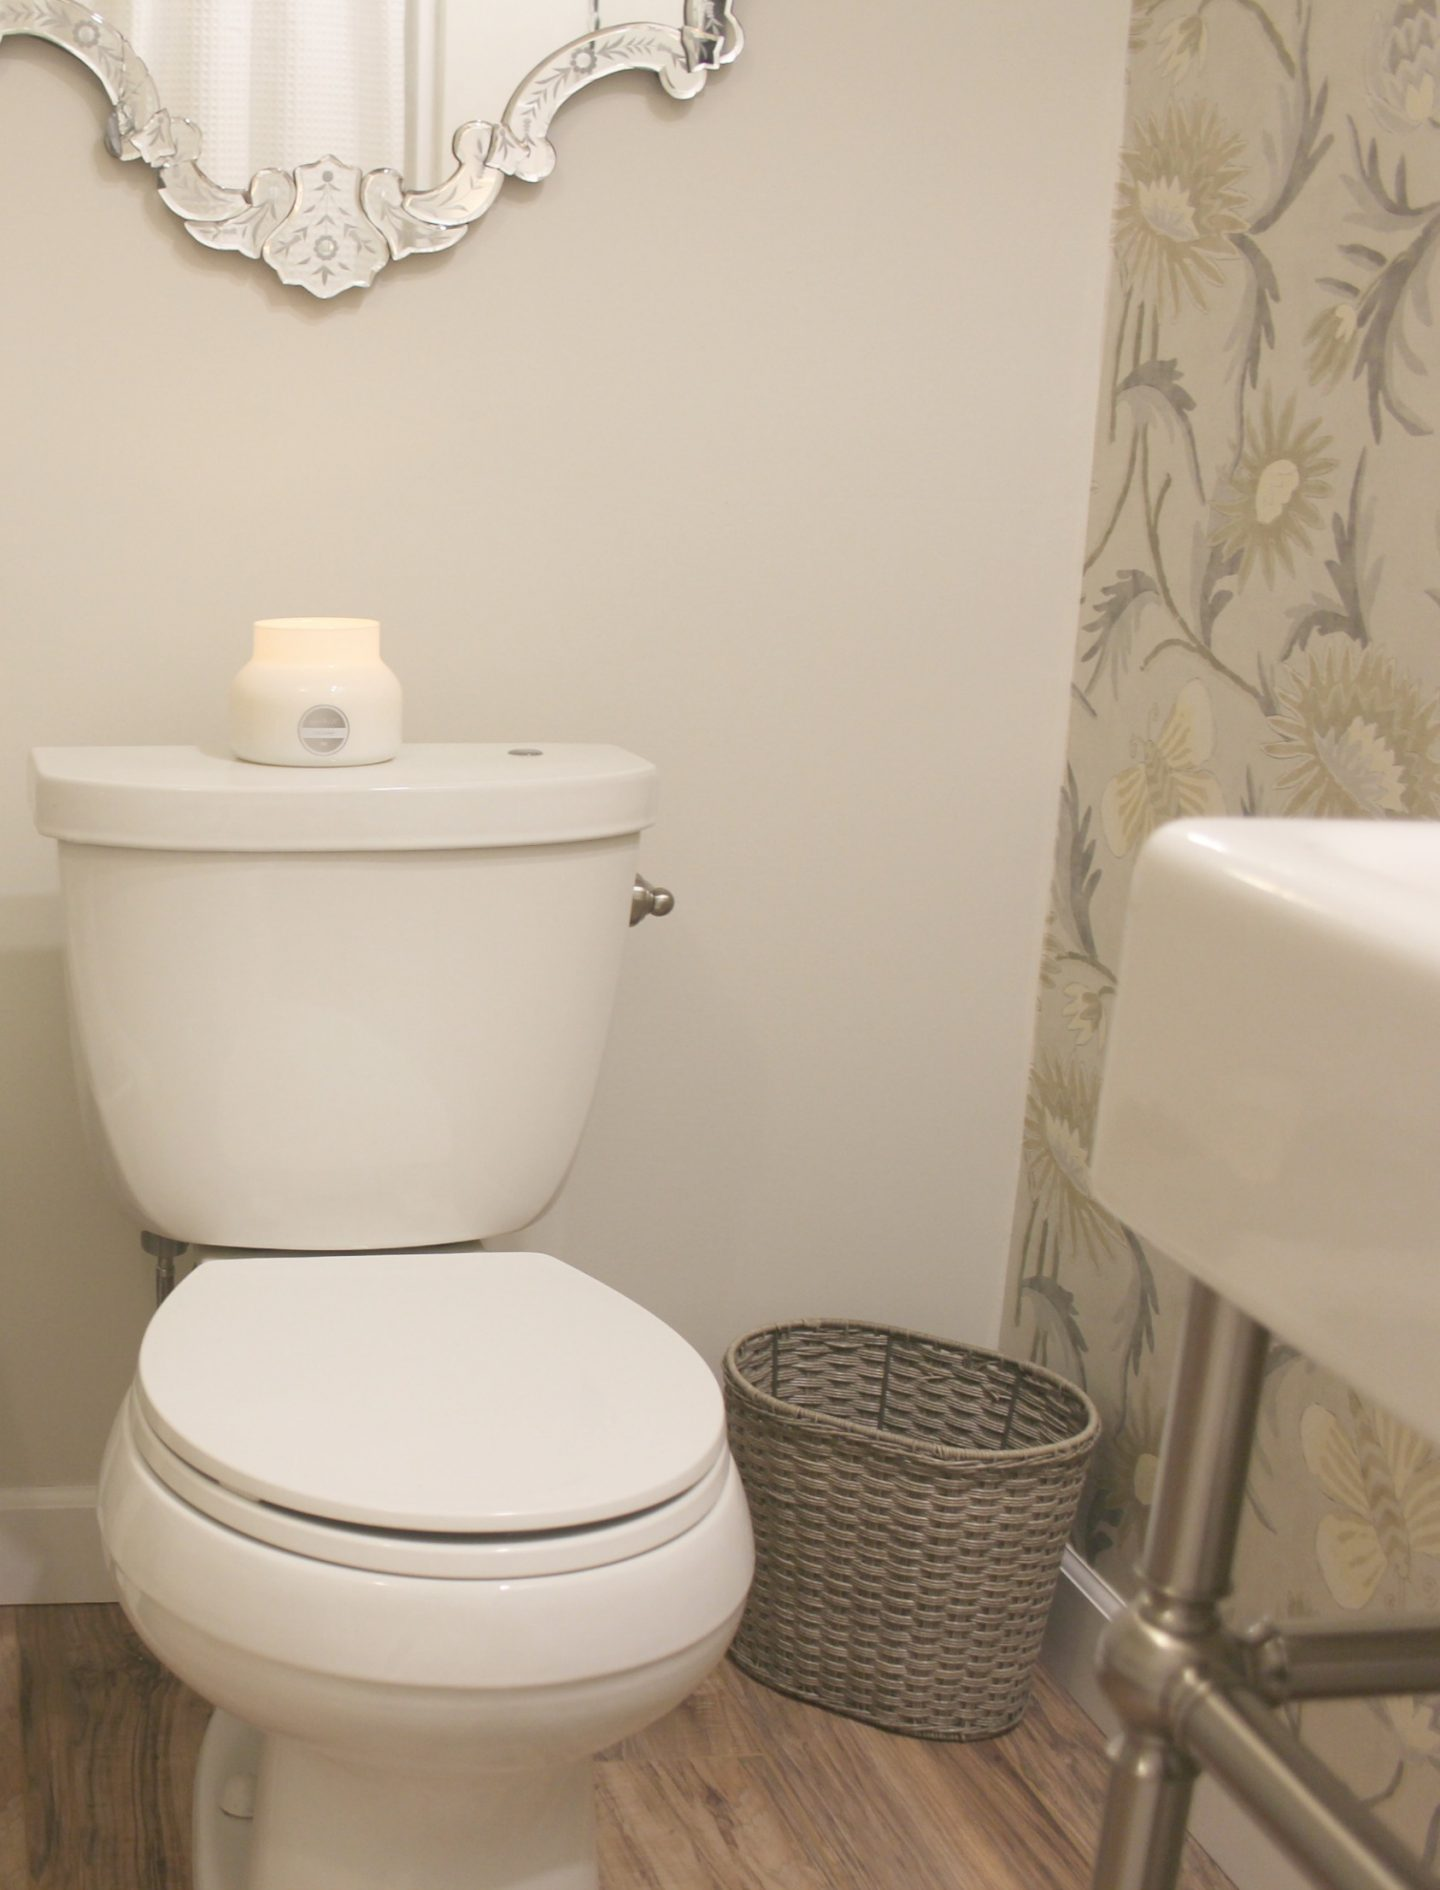 Come tour our new light, bright, and functional bathroom we built DIY style in a dark basement. #beforeandafter #renovation #bathroomdesign